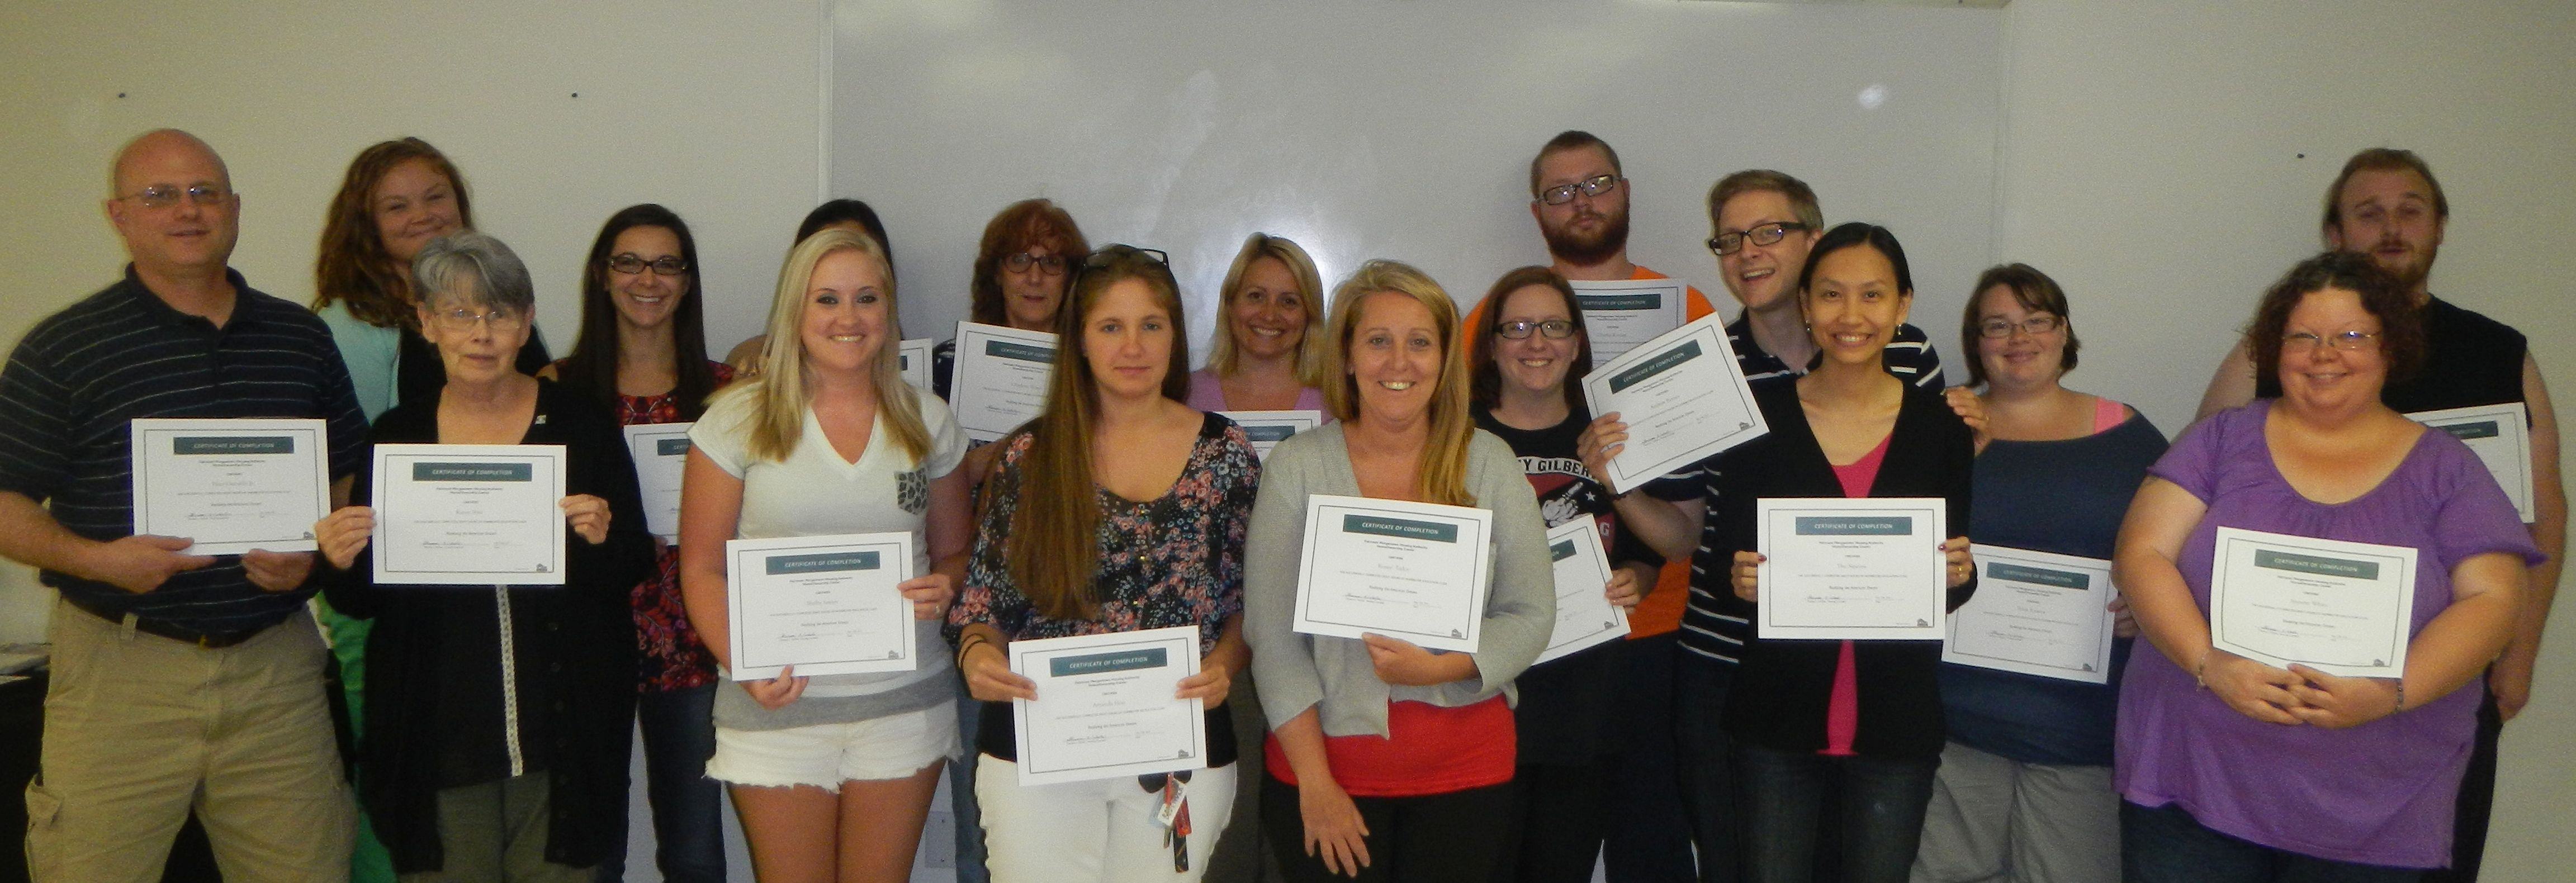 Homebuyer Education Class graduates.